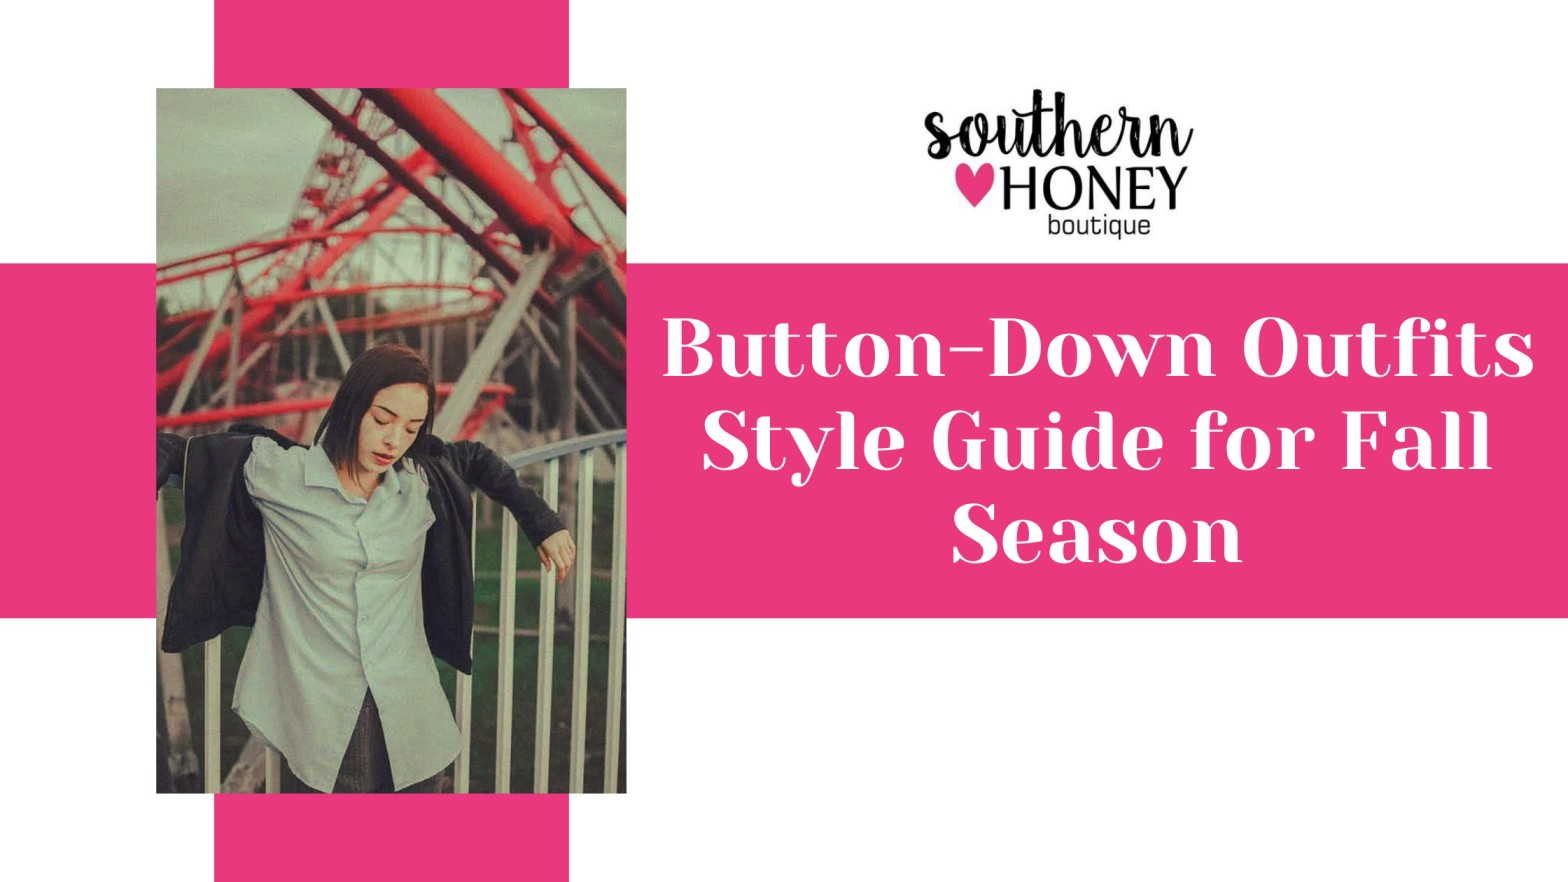 ButtonDown Outfits Style Guide for Fall Season